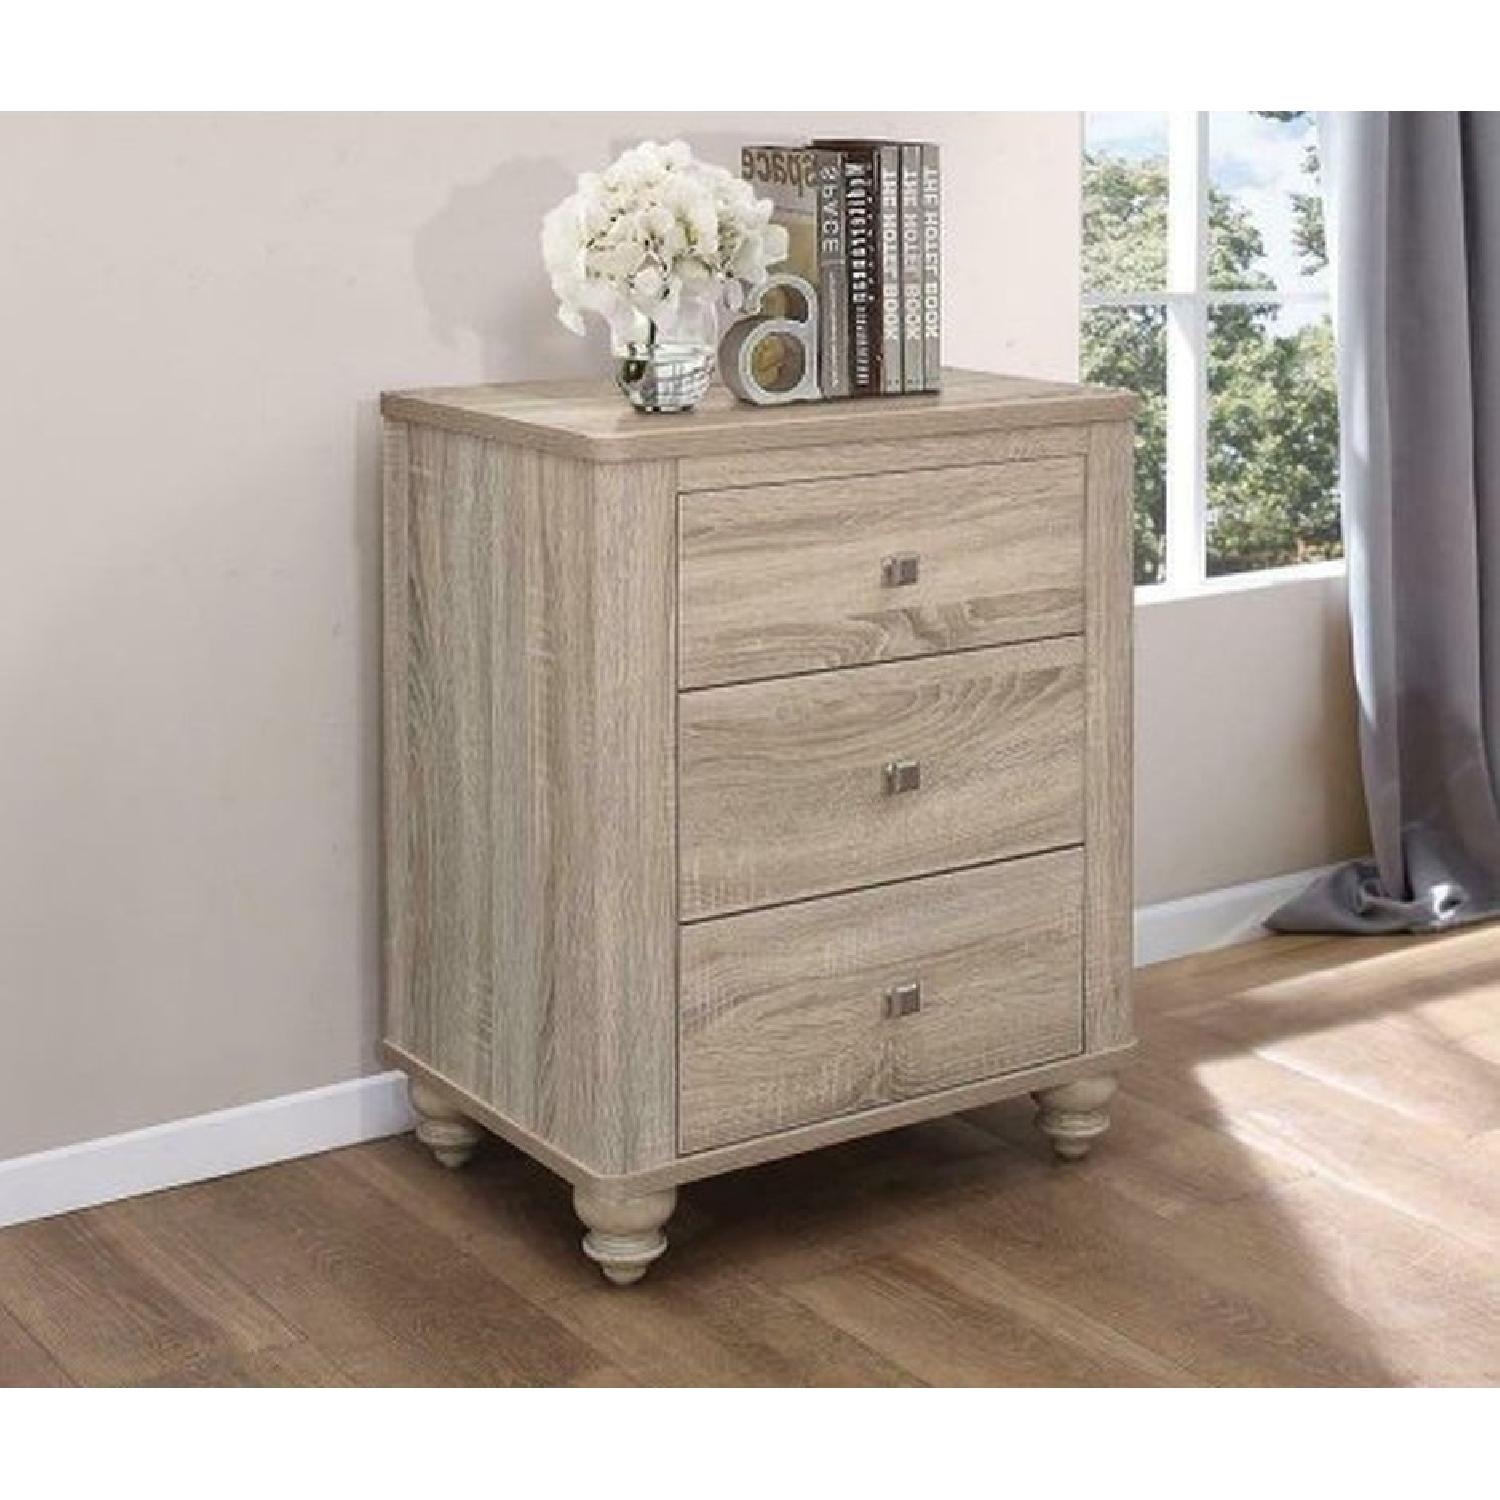 Nightstand in Natural Finish - image-1